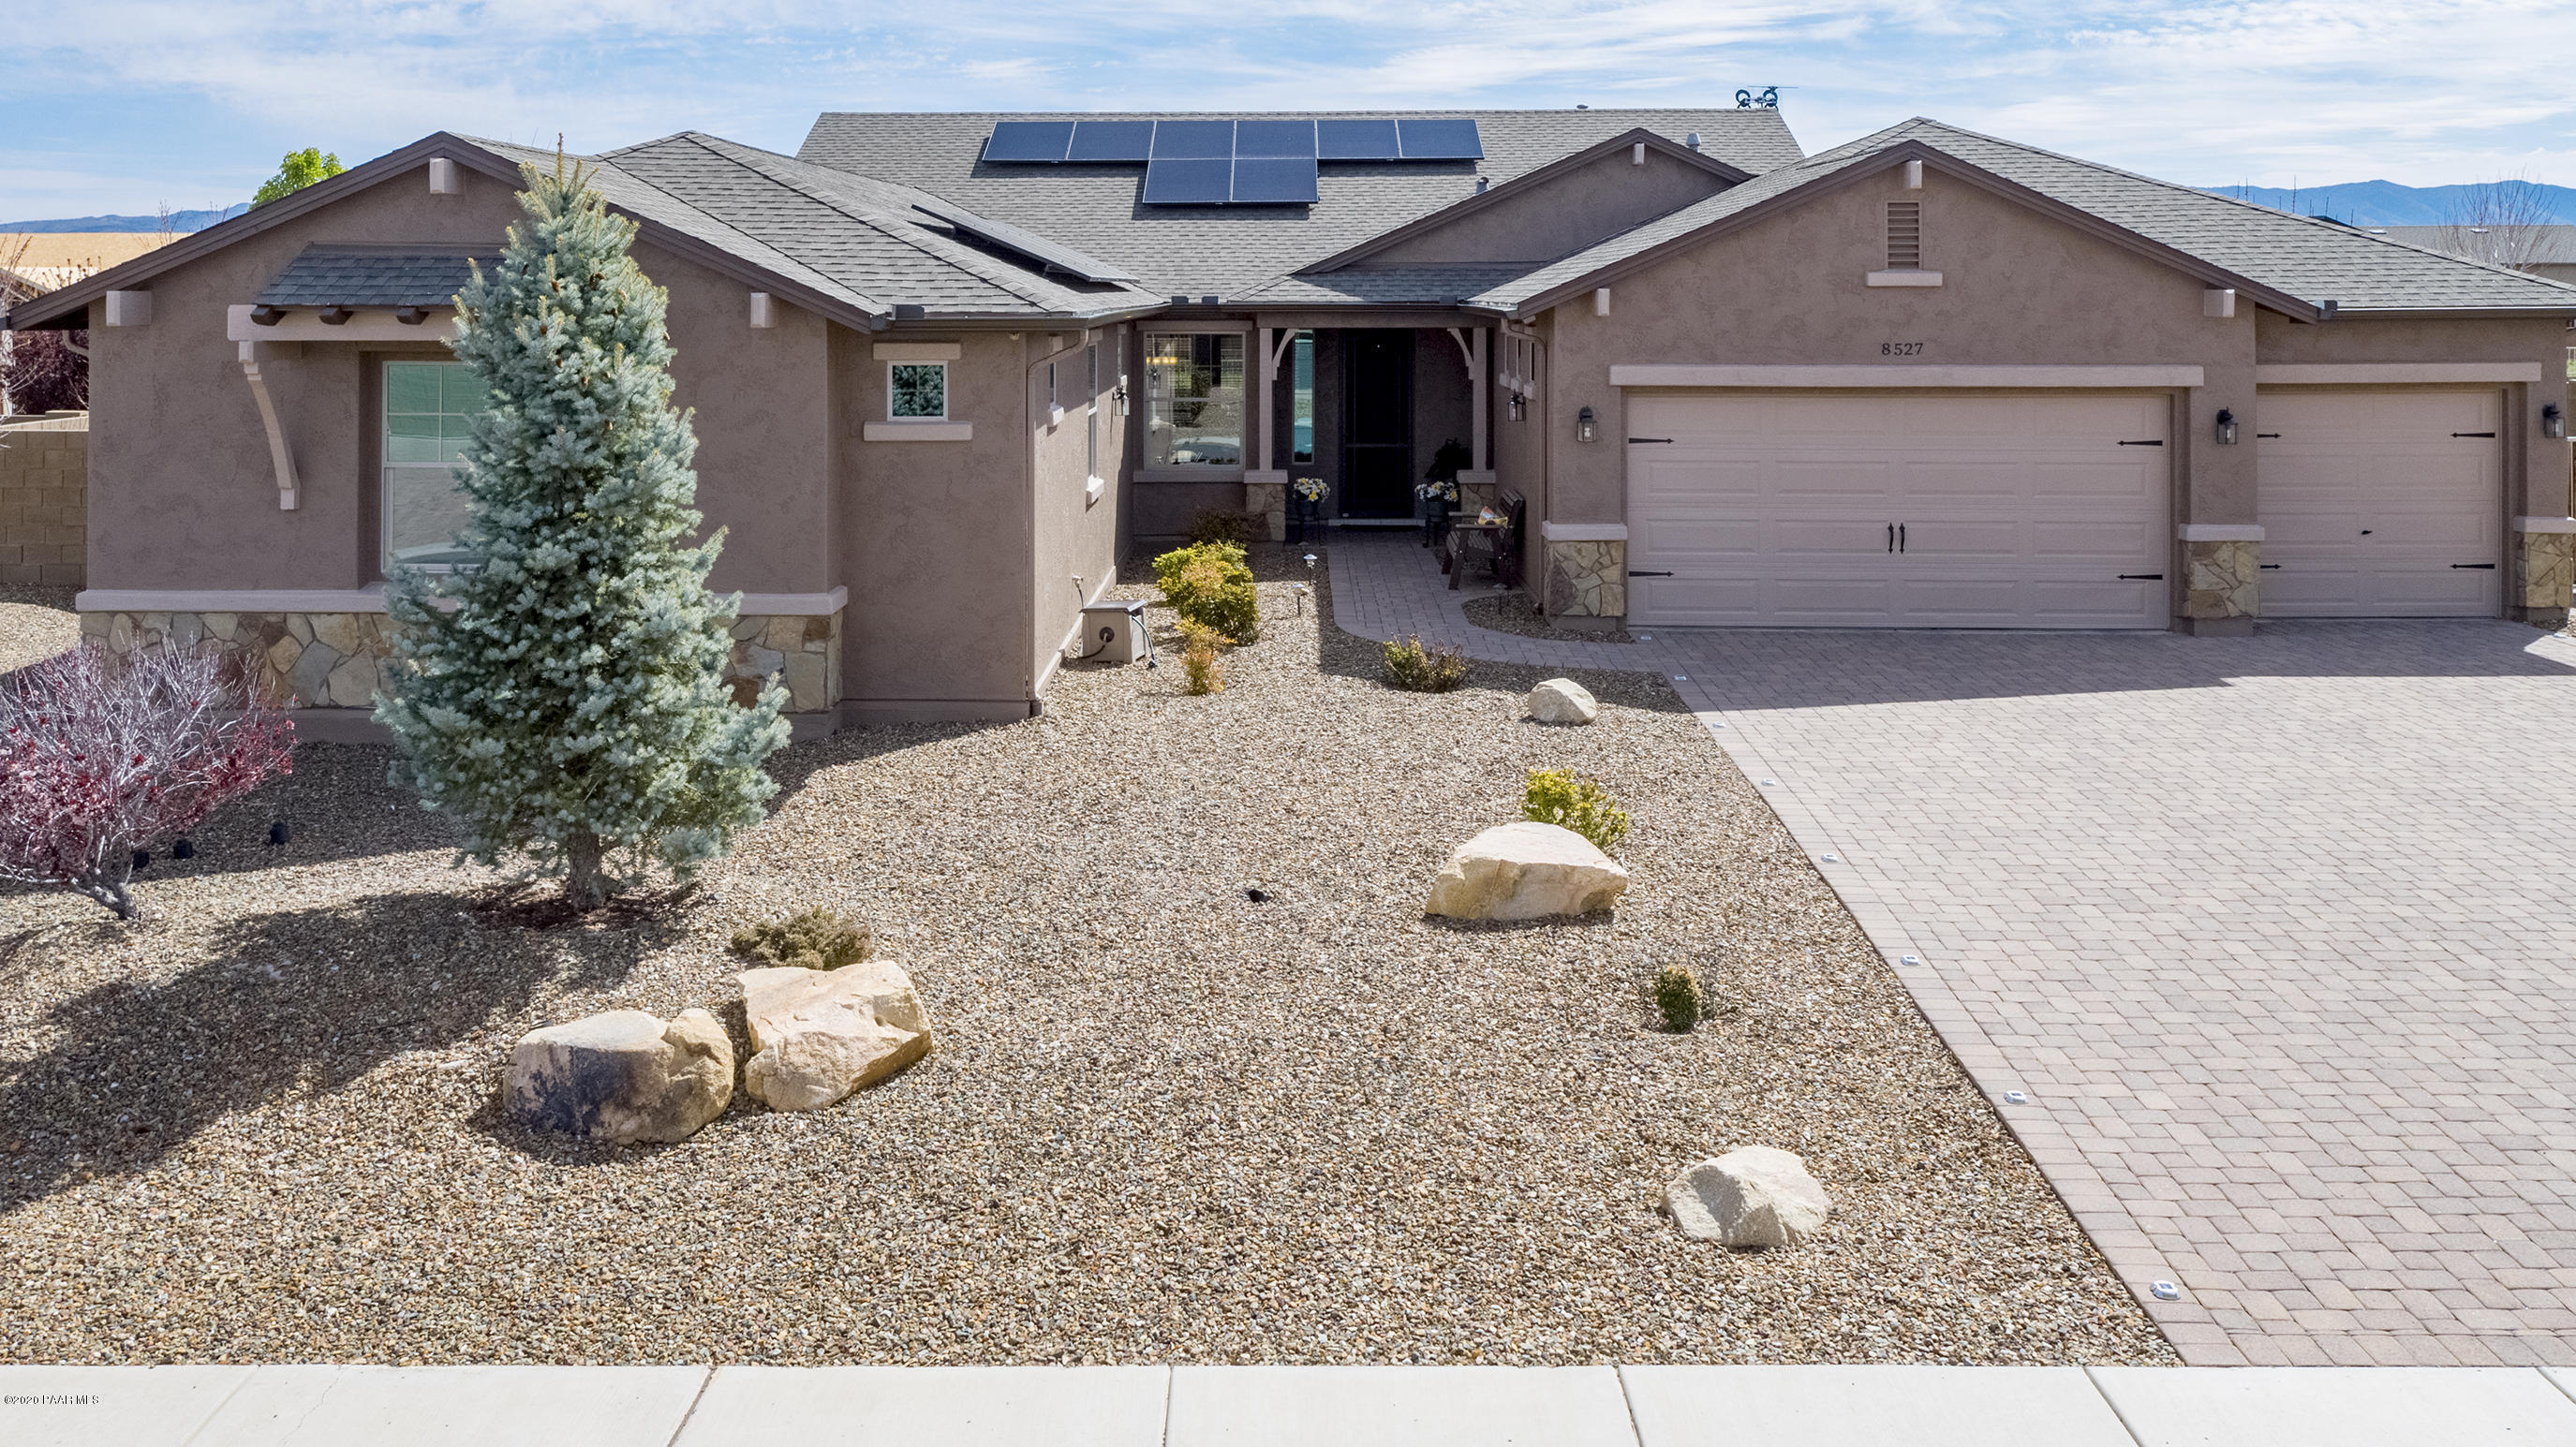 Photo of 8527 Pepperbox, Prescott Valley, AZ 86315